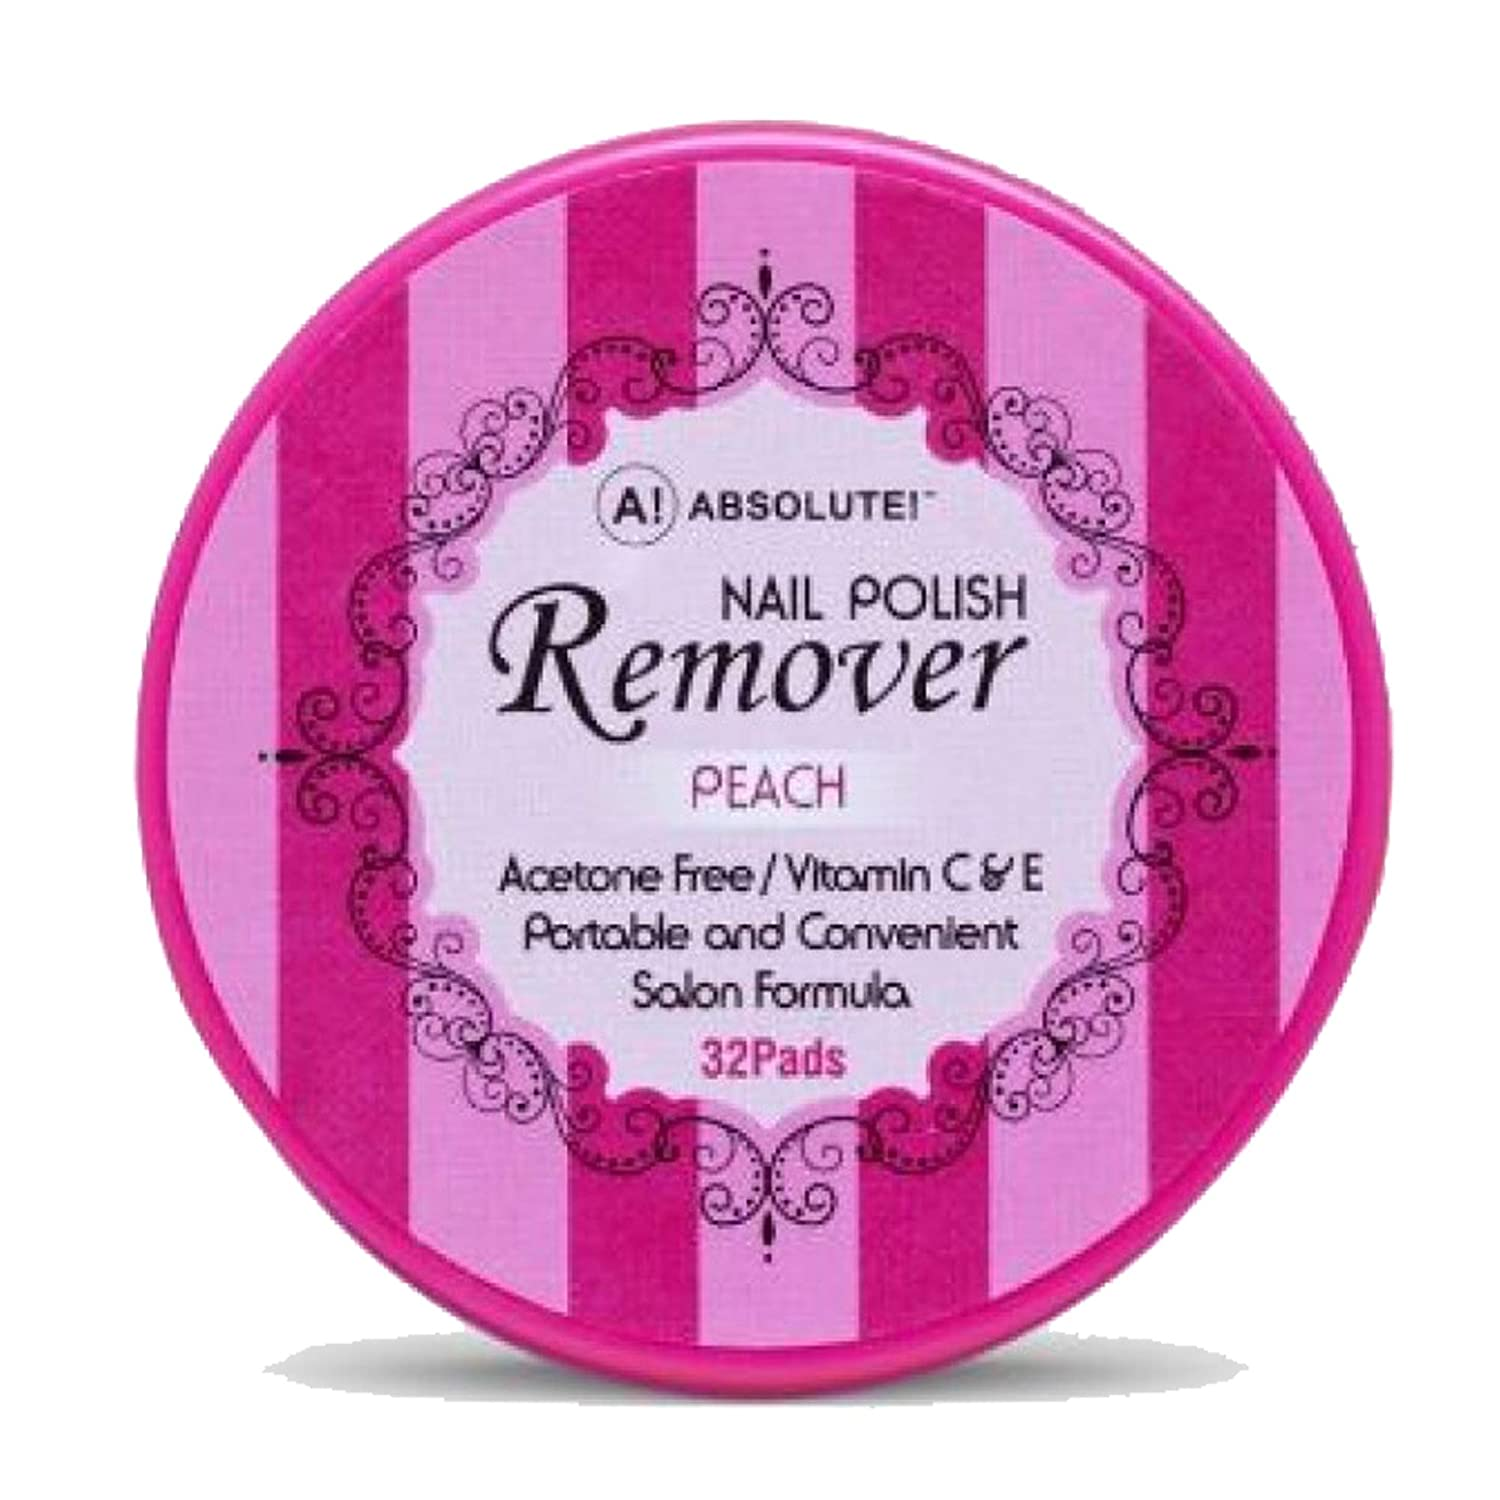 Absolute Nail Polish Remover Pads Over item handling Peach NEW New product! New type YO Scent by ABSOLUTE